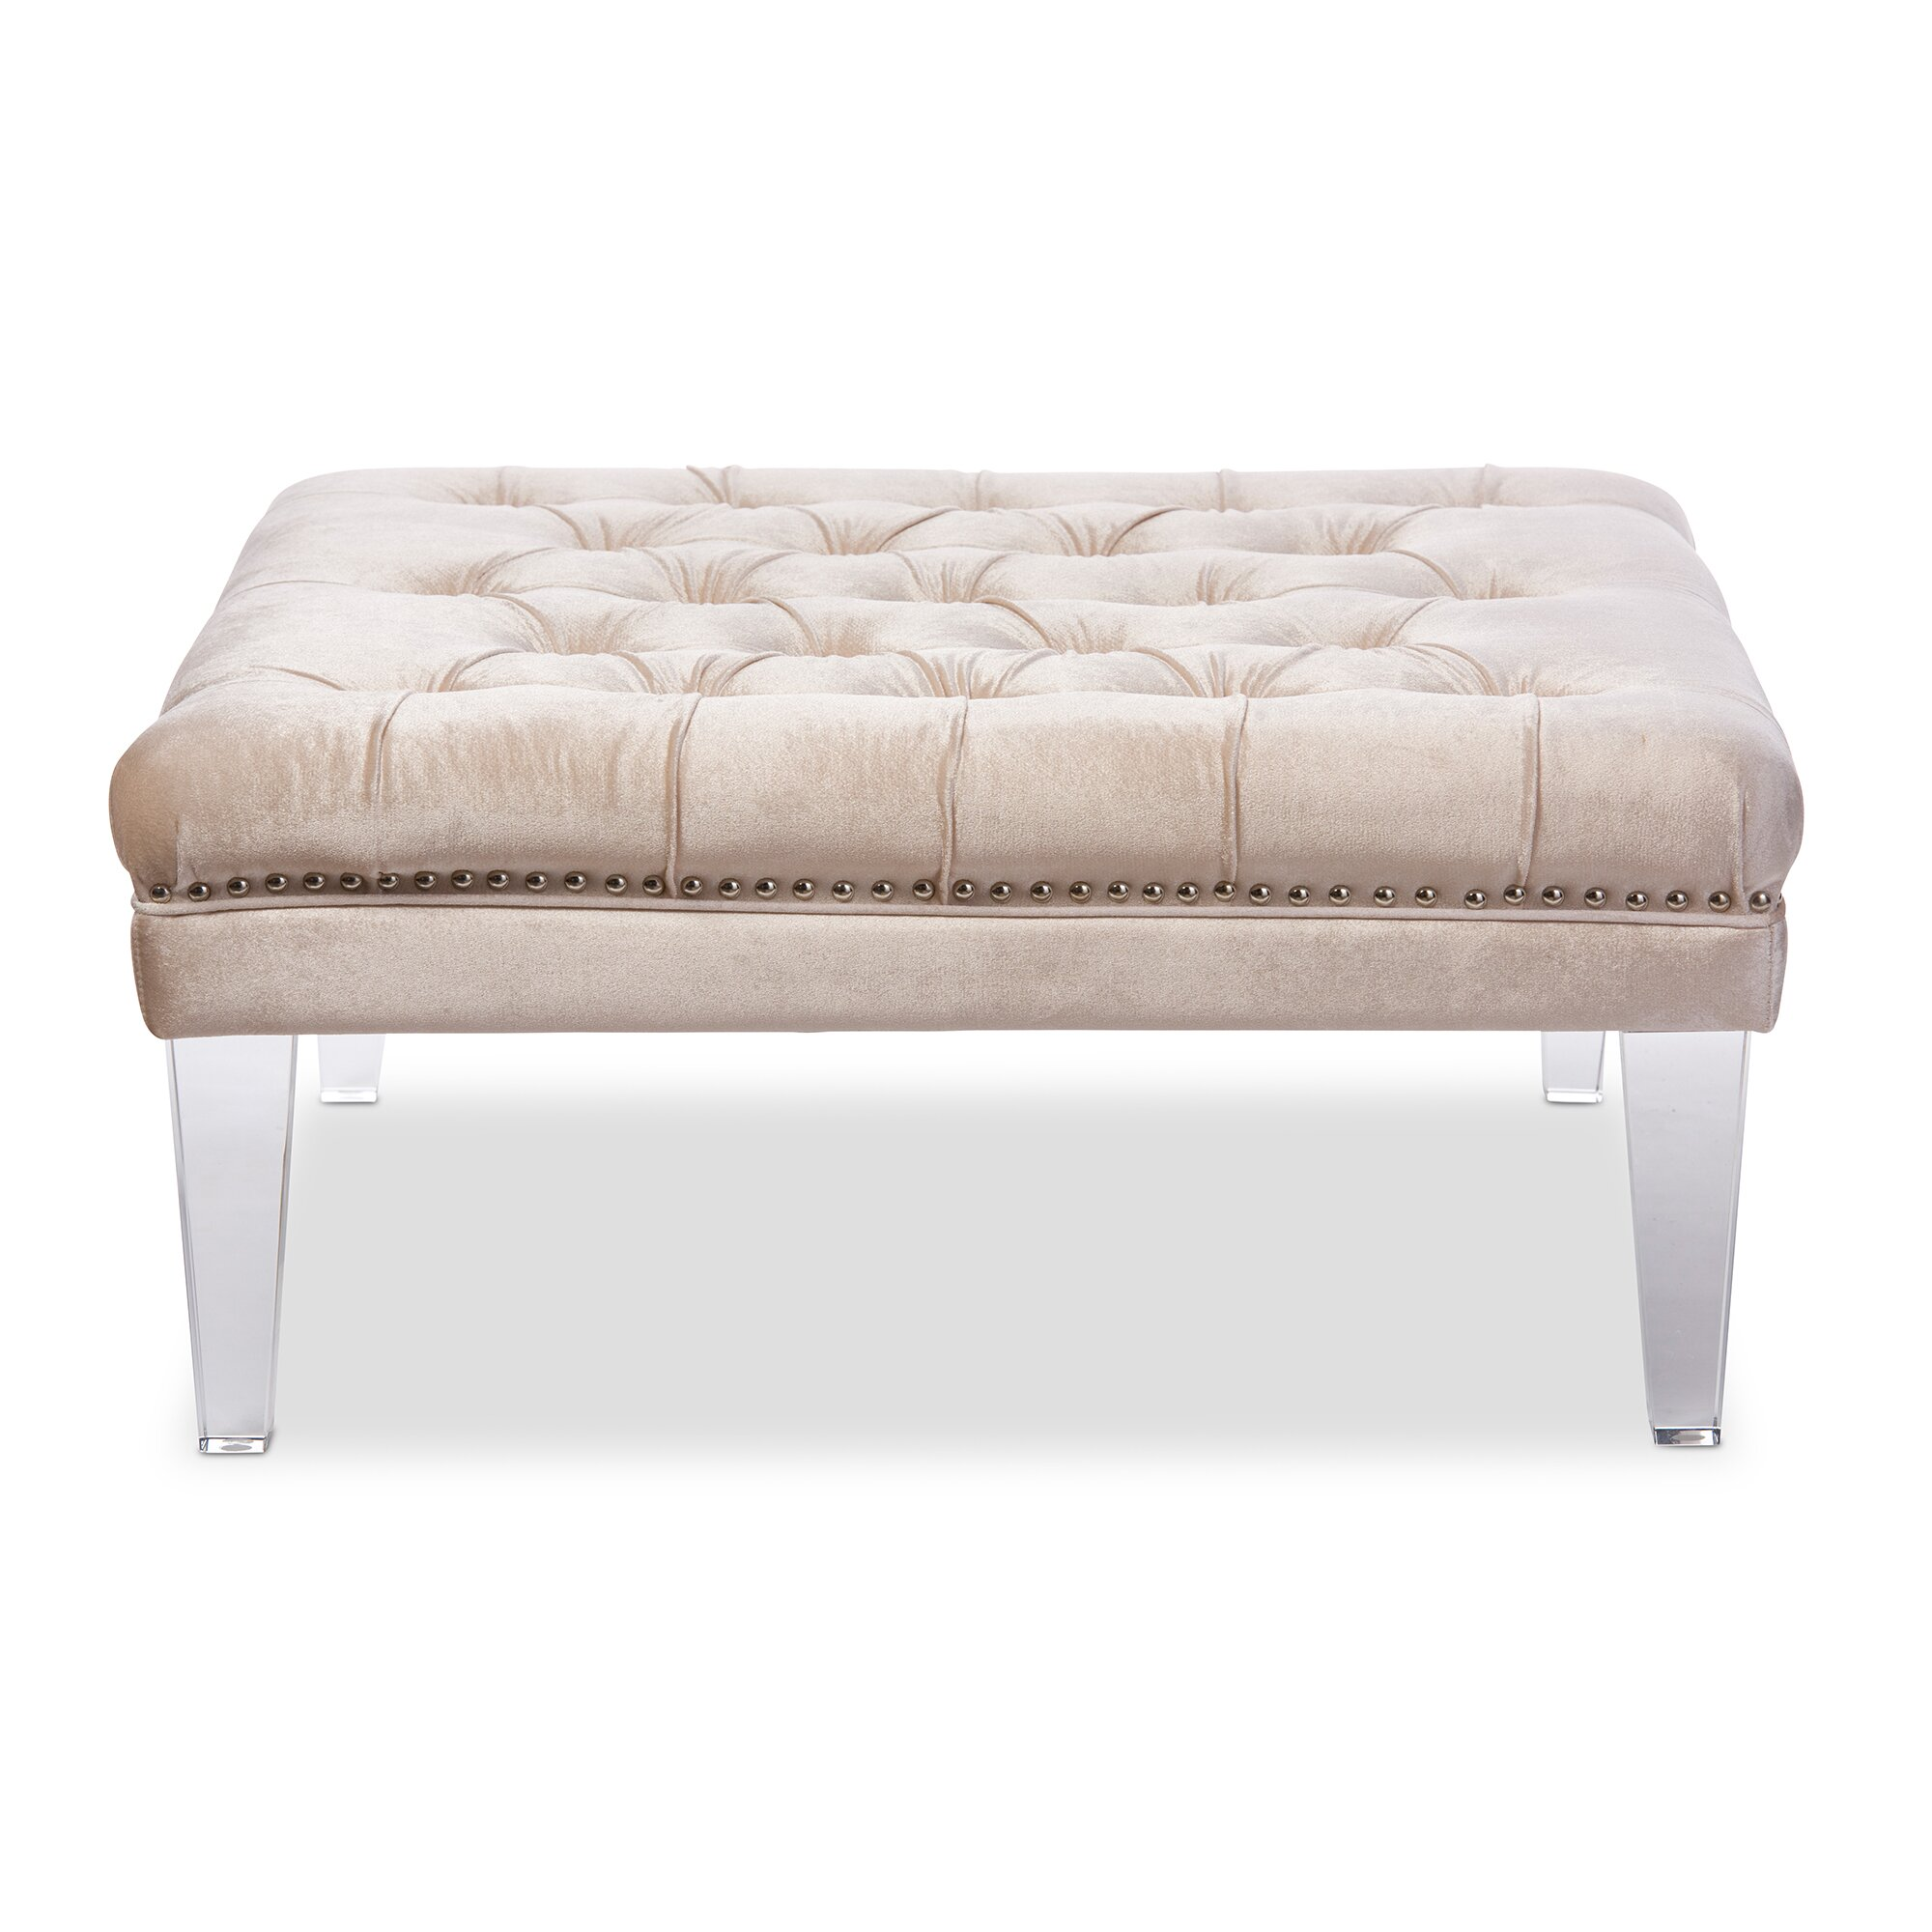 Upholstered Bench Beige: Wholesale Interiors Baxton Studio Edna Modern And